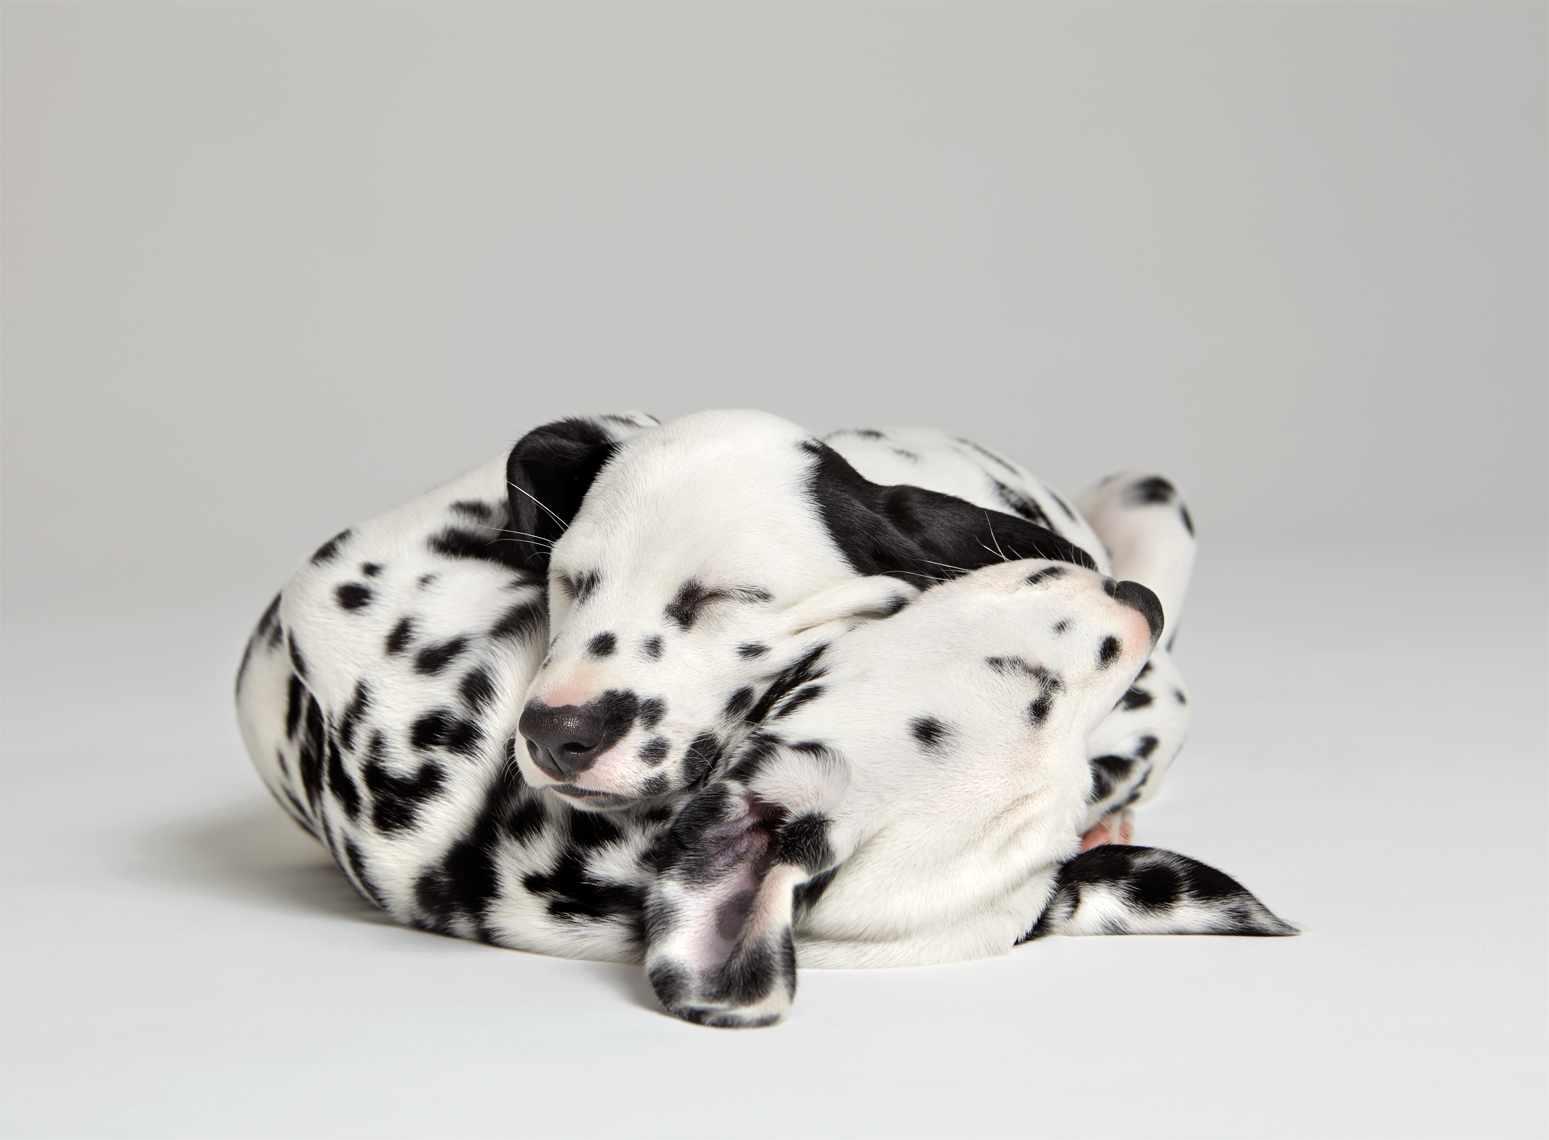 Dalmatian puppies cuddling